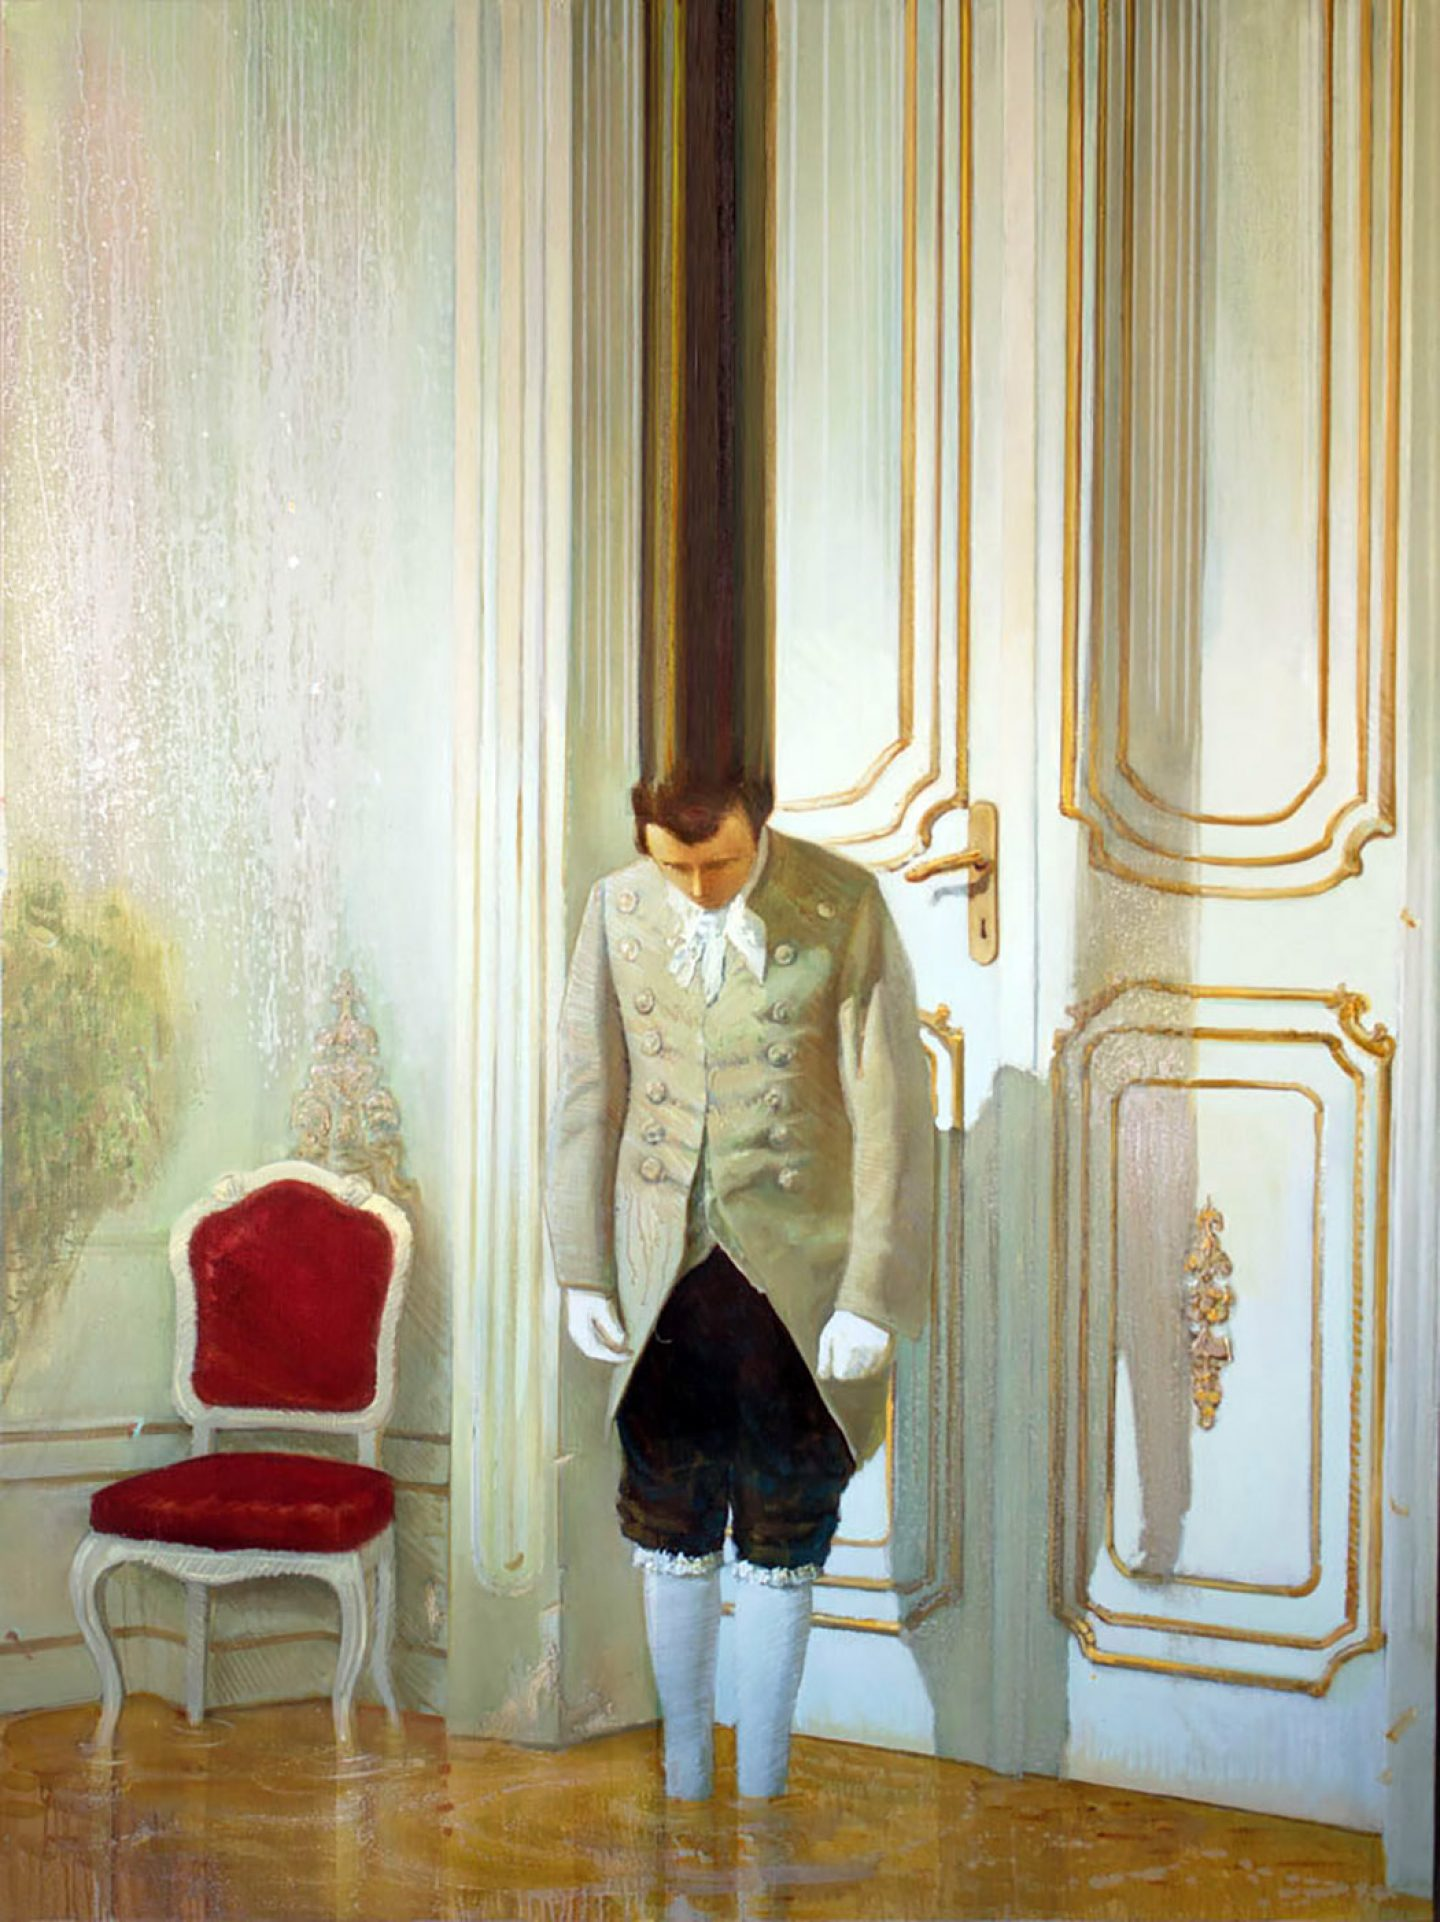 Classical Paintings with Surprising Modern Glitches